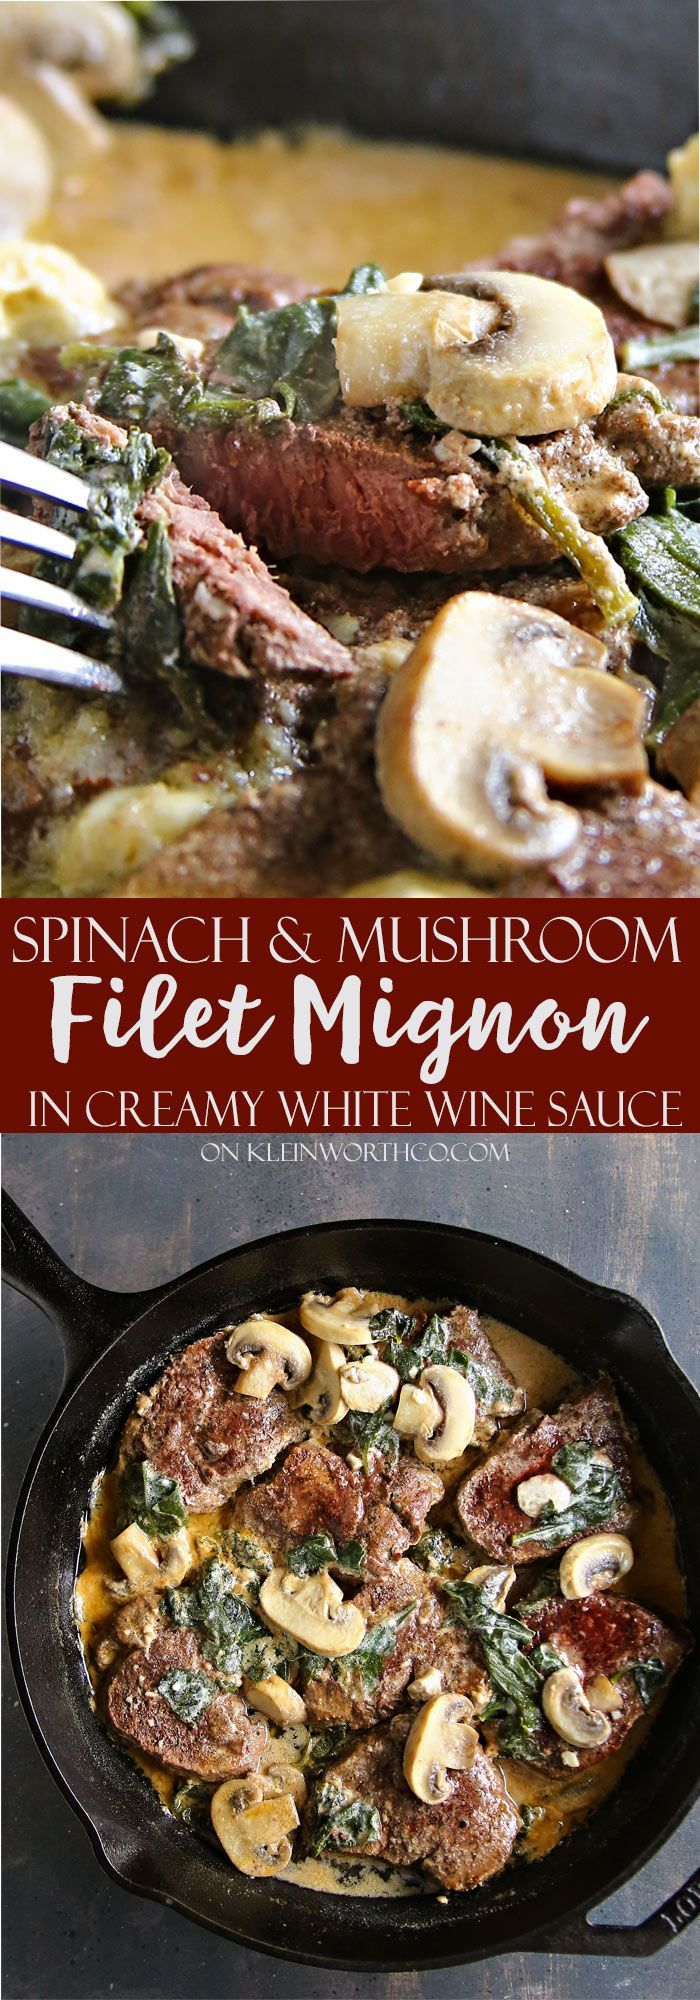 Spinach Mushroom Filet Mignon in Creamy White Wine Sauce made with the most tender, premium cut of beef loin. A simple dinner that has the WOW factor! via @KleinworthCo